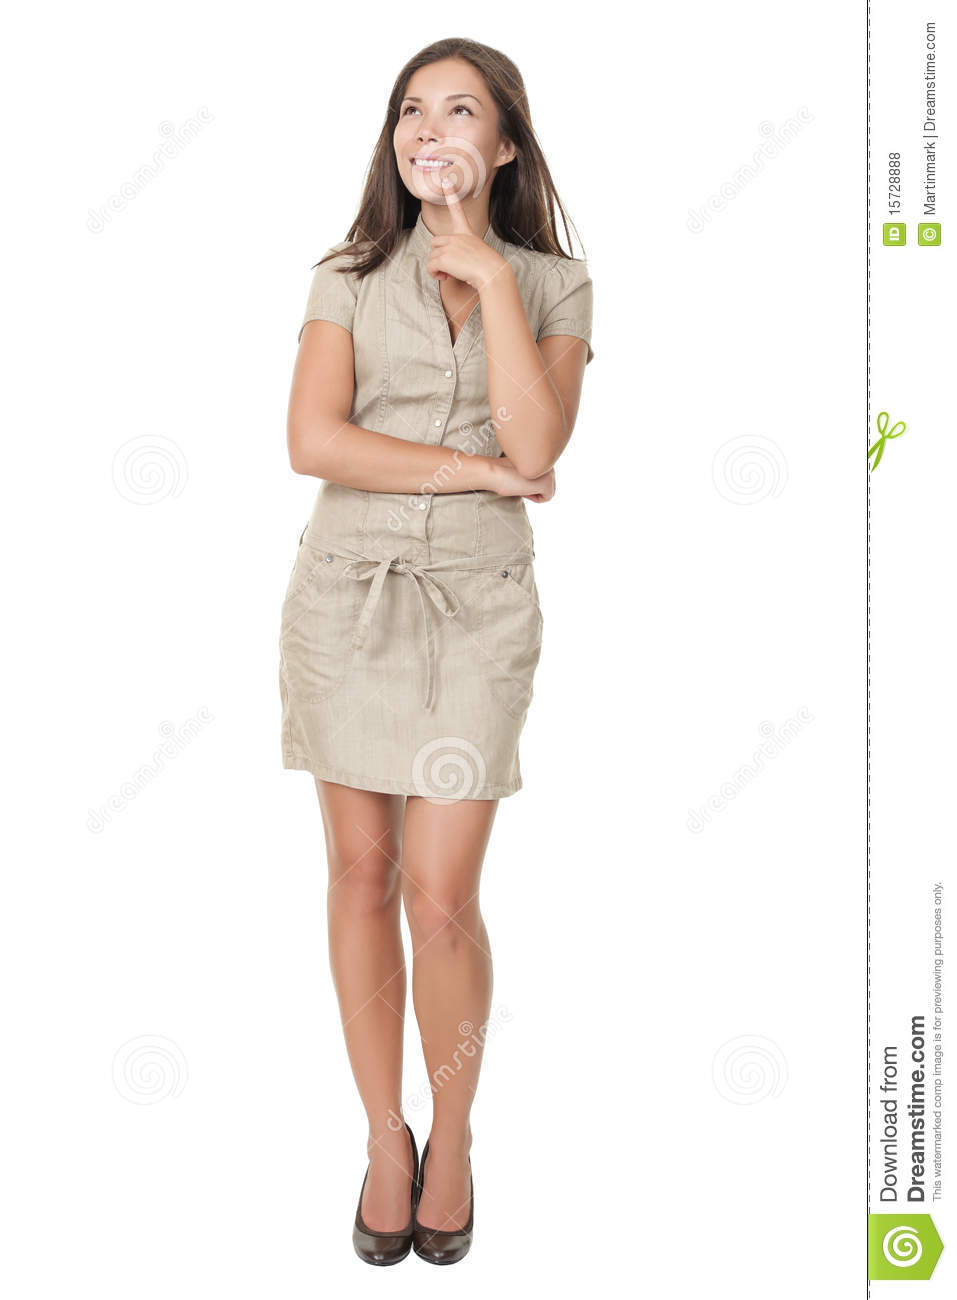 Thinking woman standing isolated